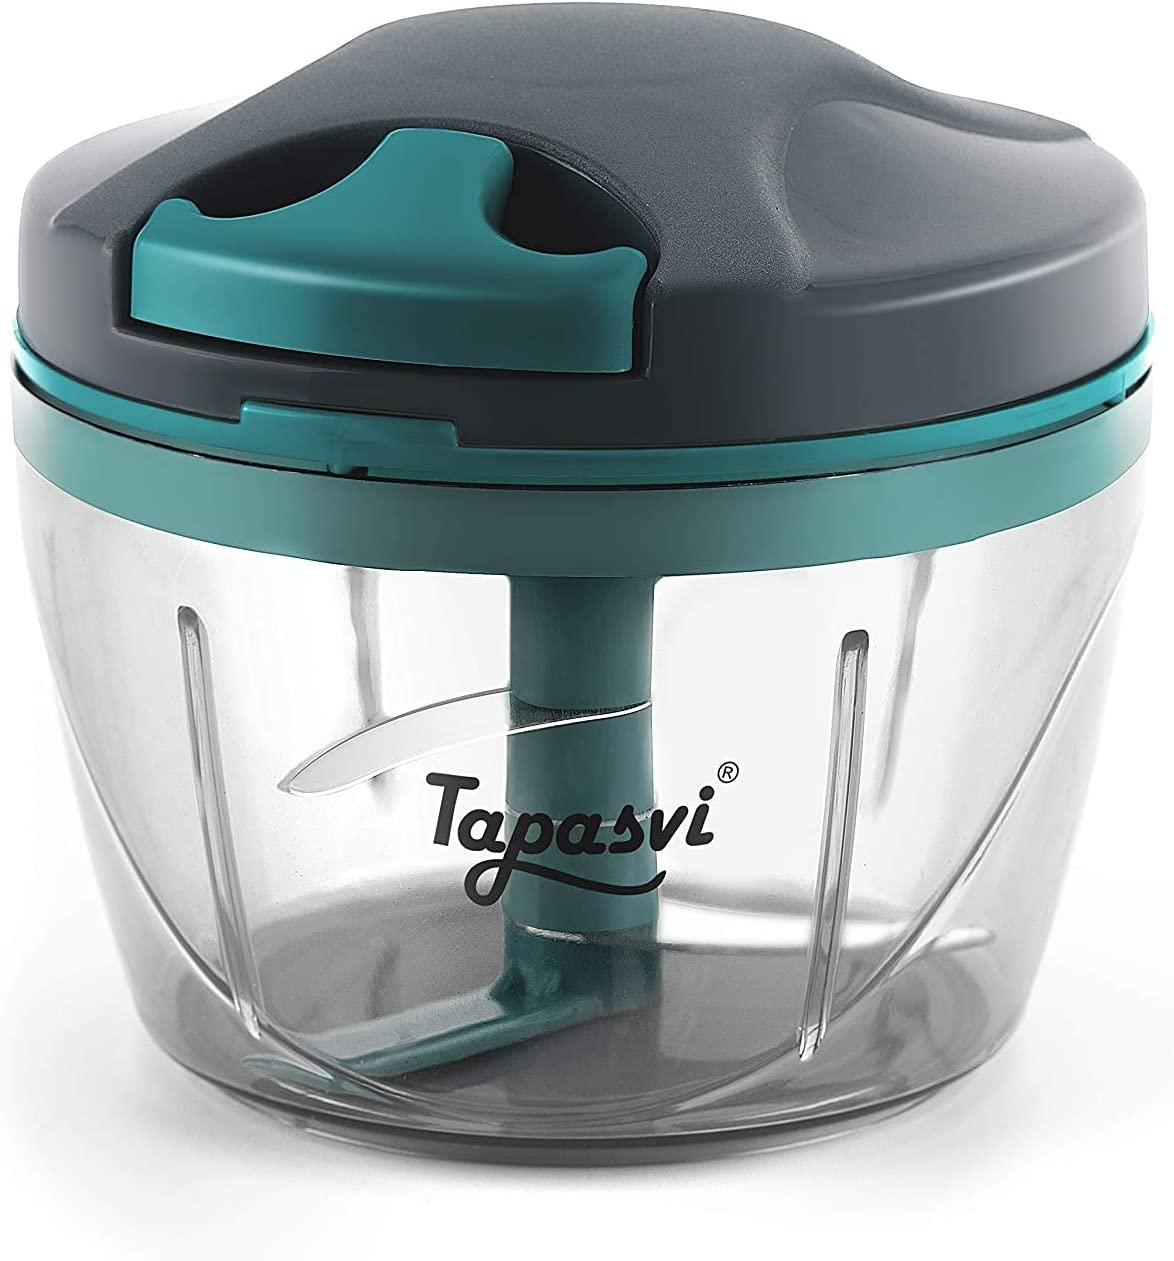 TAPASVI Hand Powered Food Chopper, Easy Pull Manual Food Processor Handheld Vegetable Slicer Crusher and Dicer, Hand-powered Onion Garlic Chopper, Press Mincer Cutter with Stainless Steel Blades 650ml